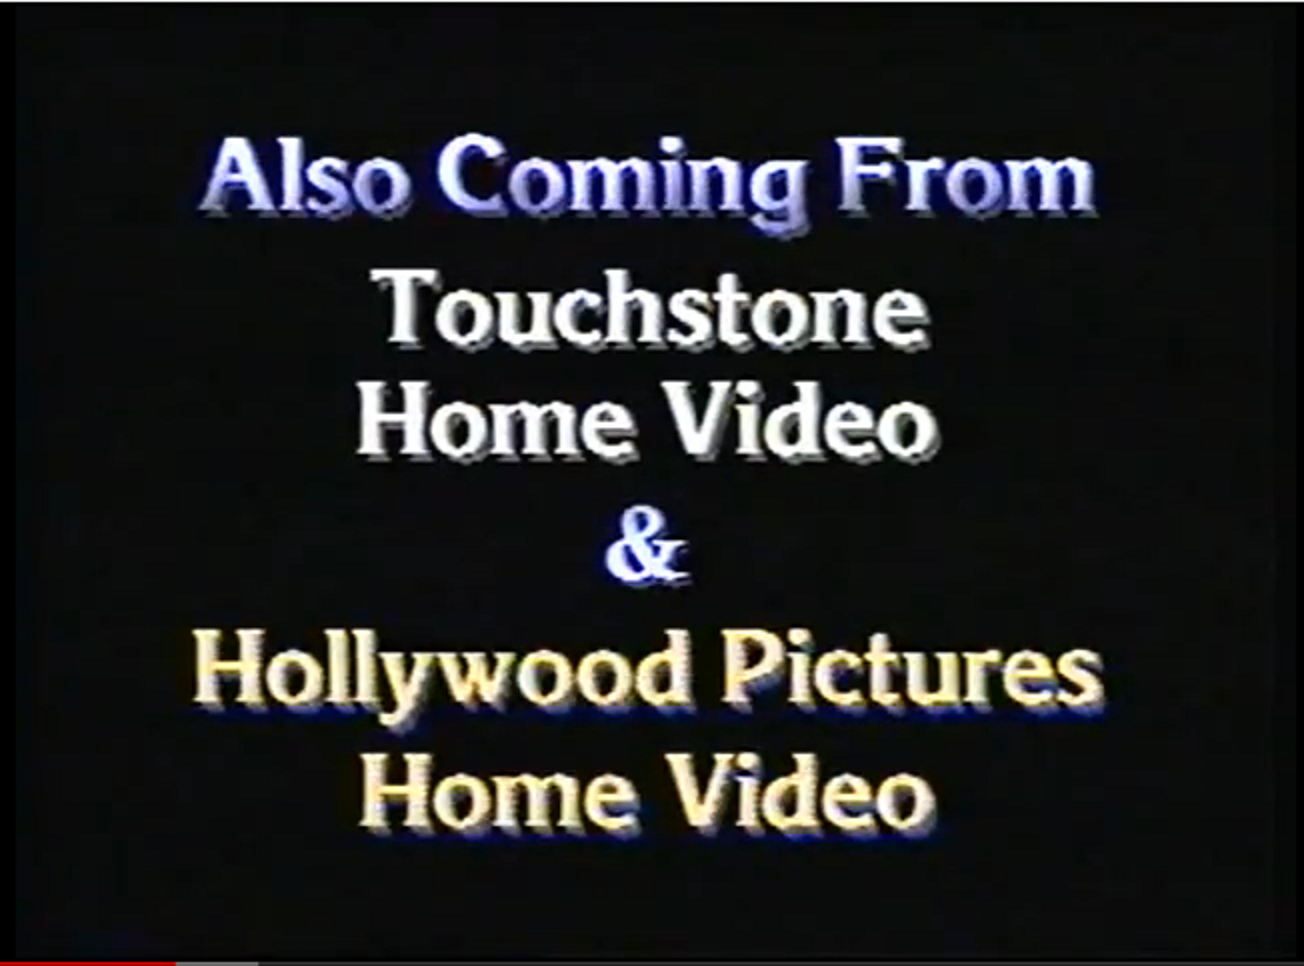 Hollywood home video Logos.